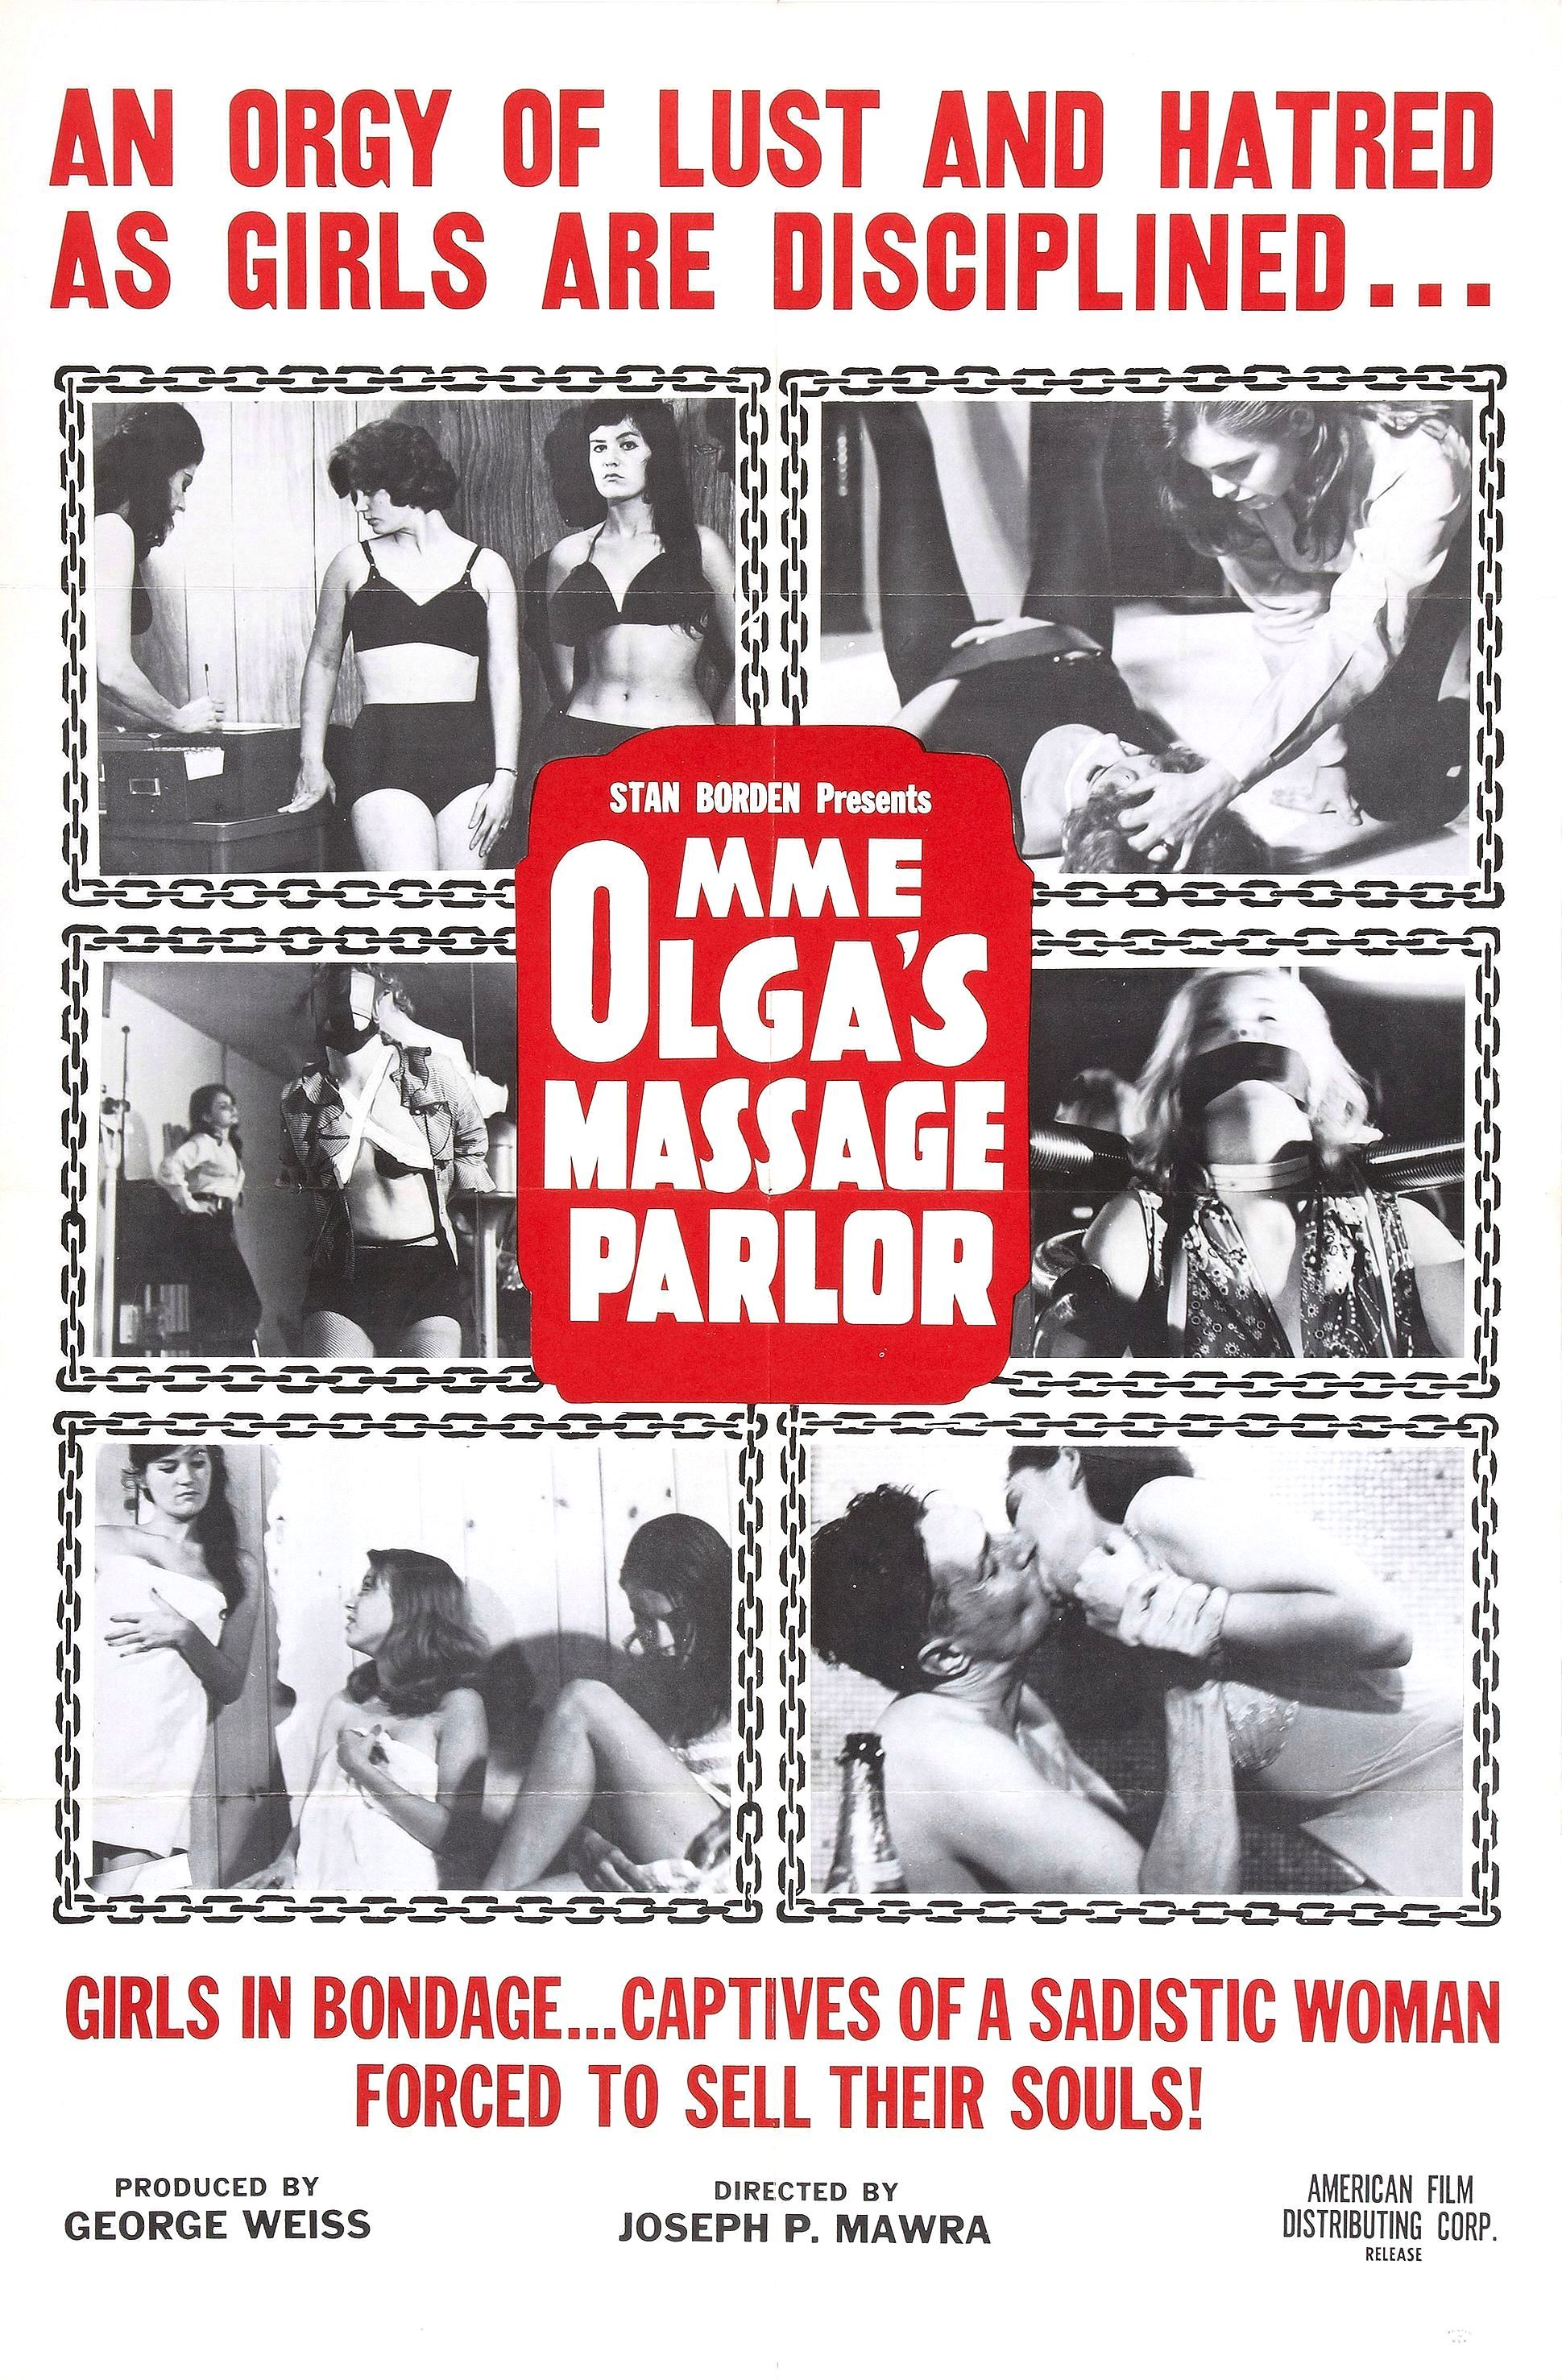 mme olgas massage parlor film poster